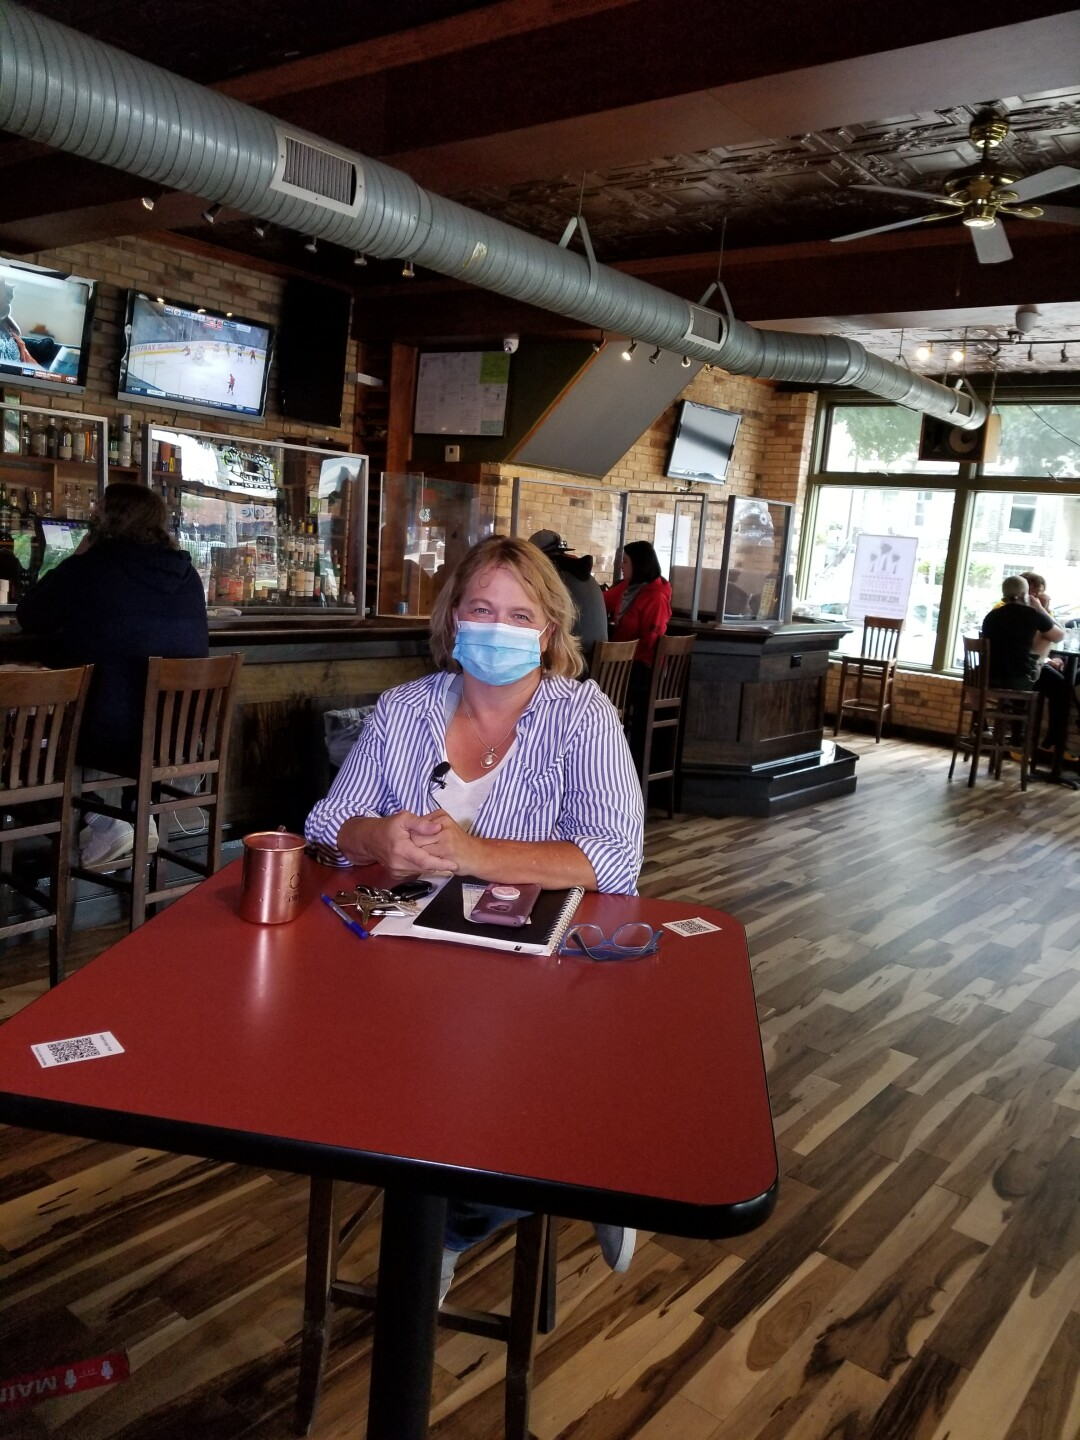 Points East Pub owner said while their procedures might have changed, their food is still good as ever.